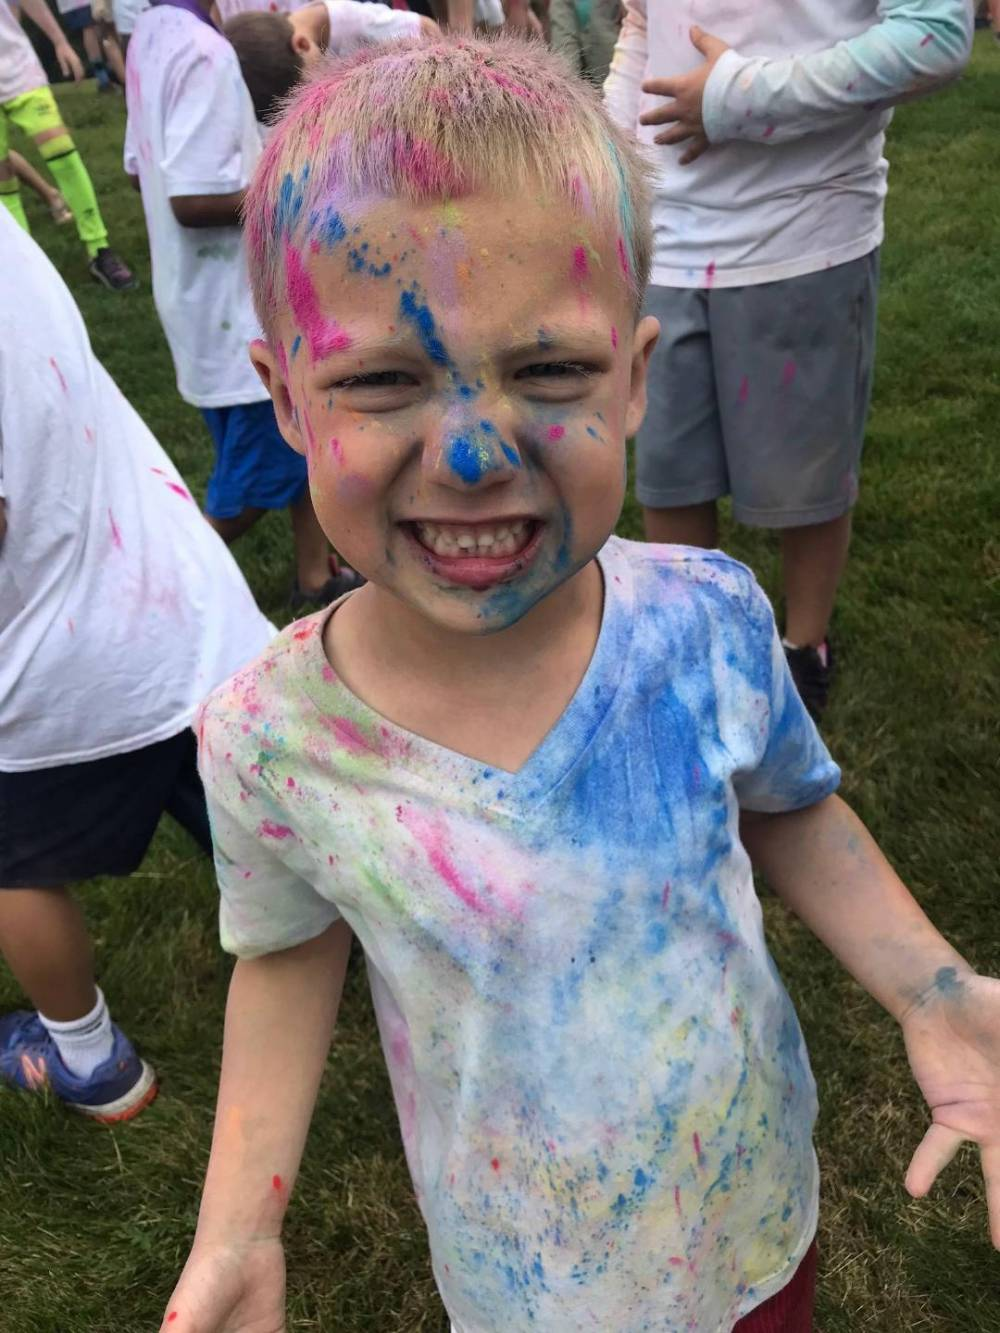 TOP ILLINOIS SUMMER CAMP: Good Times Day Camp Libertyville is a Top Summer Camp located in Libertyville Illinois offering many fun and enriching camp programs. Good Times Day Camp Libertyville also offers CIT/LIT and/or Teen Leadership Opportunities, too.